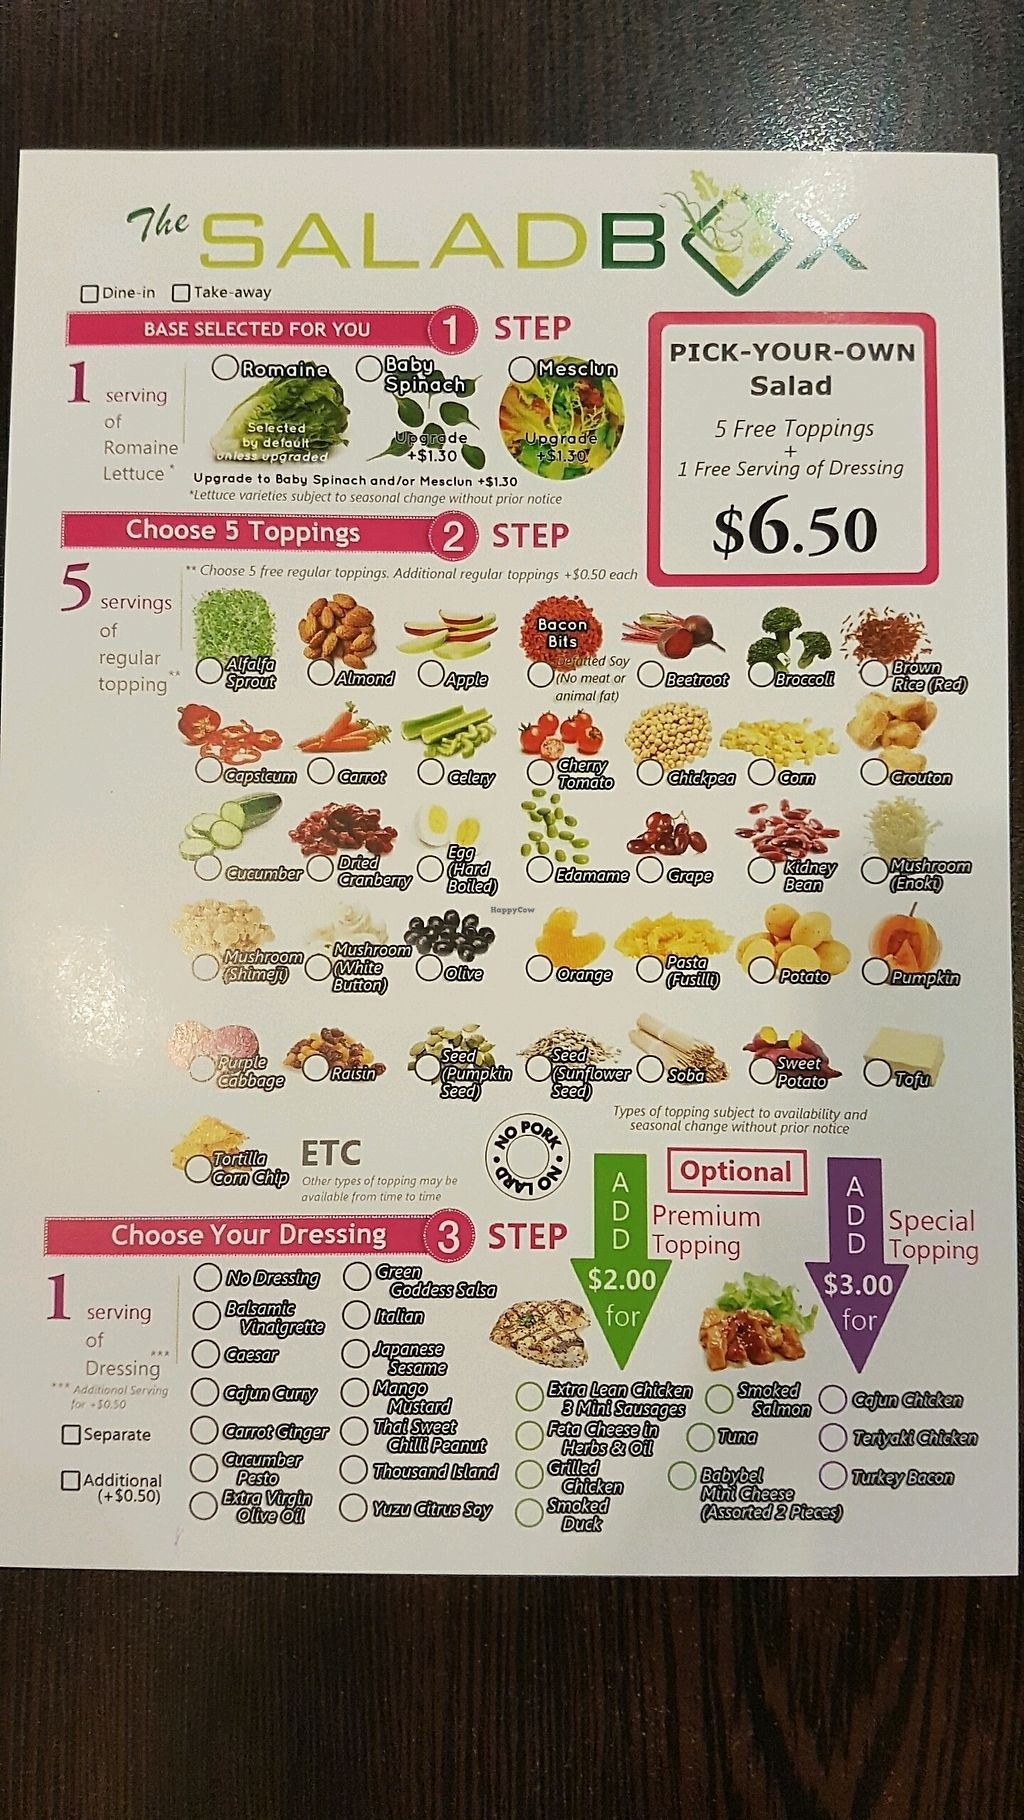 "Photo of The SaladBox - Bugis MRT   by <a href=""/members/profile/matostars"">matostars</a> <br/>Menu page 1 <br/> March 17, 2018  - <a href='/contact/abuse/image/110210/371796'>Report</a>"